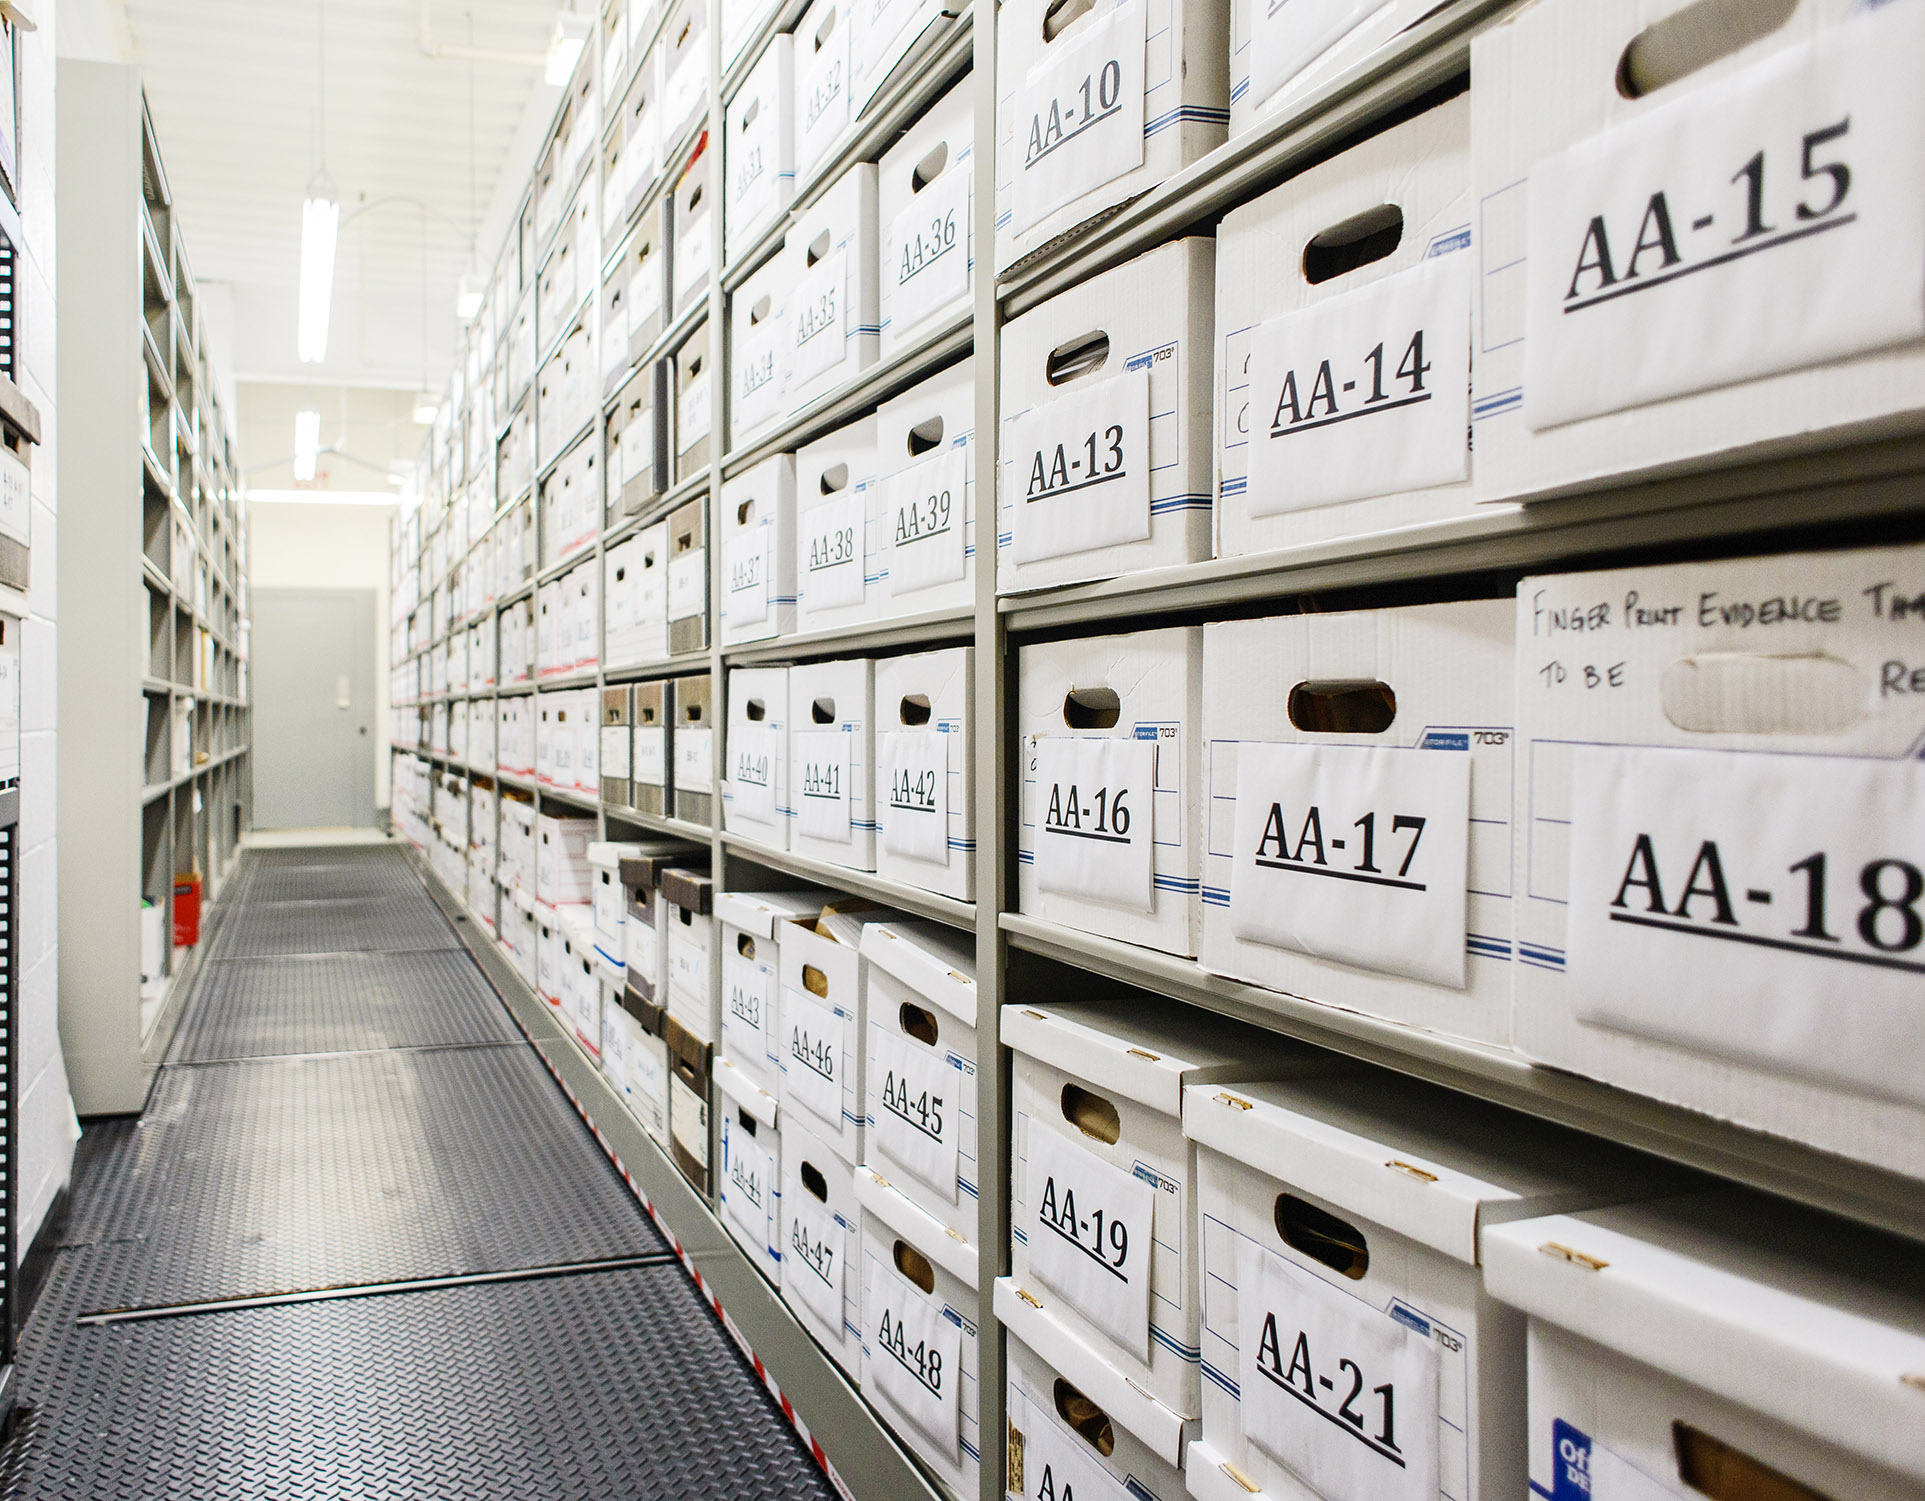 Evidence Storage Lockers Maintain A Secure Chain Of Custody